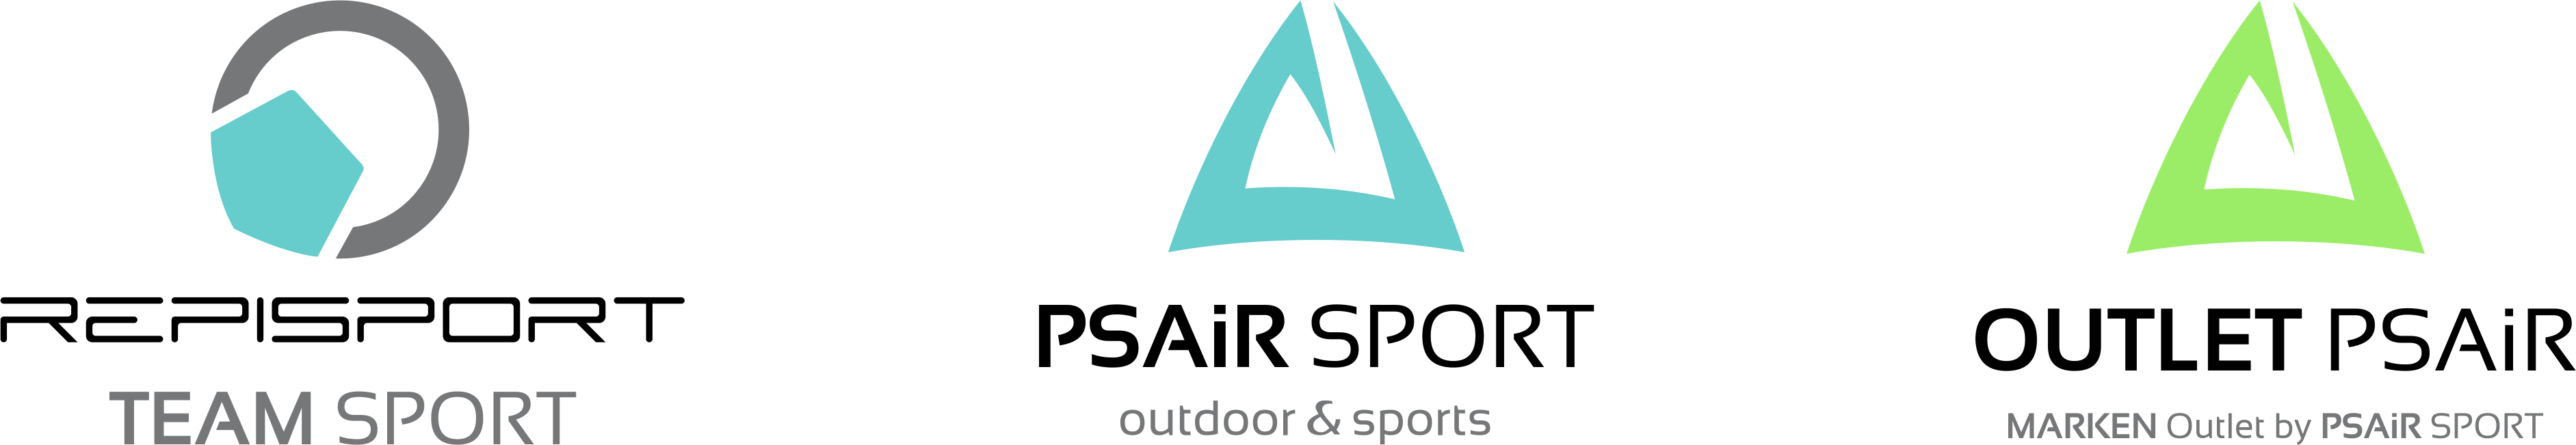 REPISPORT • PSAiR SPORT • OUTLET PSAiR